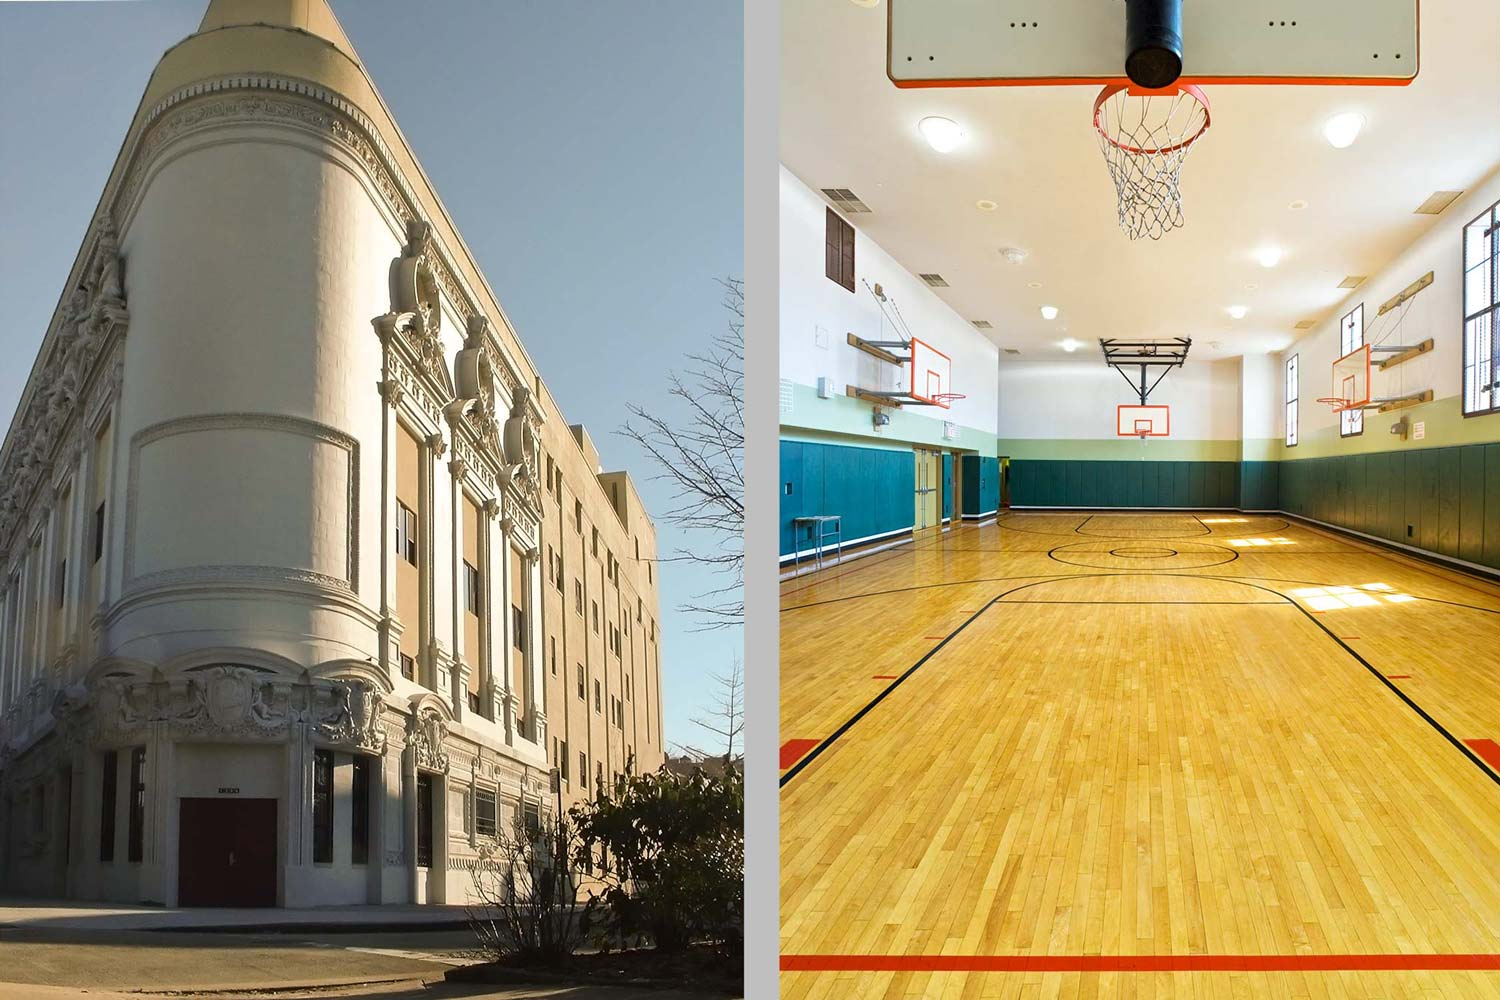 The Acorn High School for Social Justice was constructed inside the shell for a former vaudeville theater.